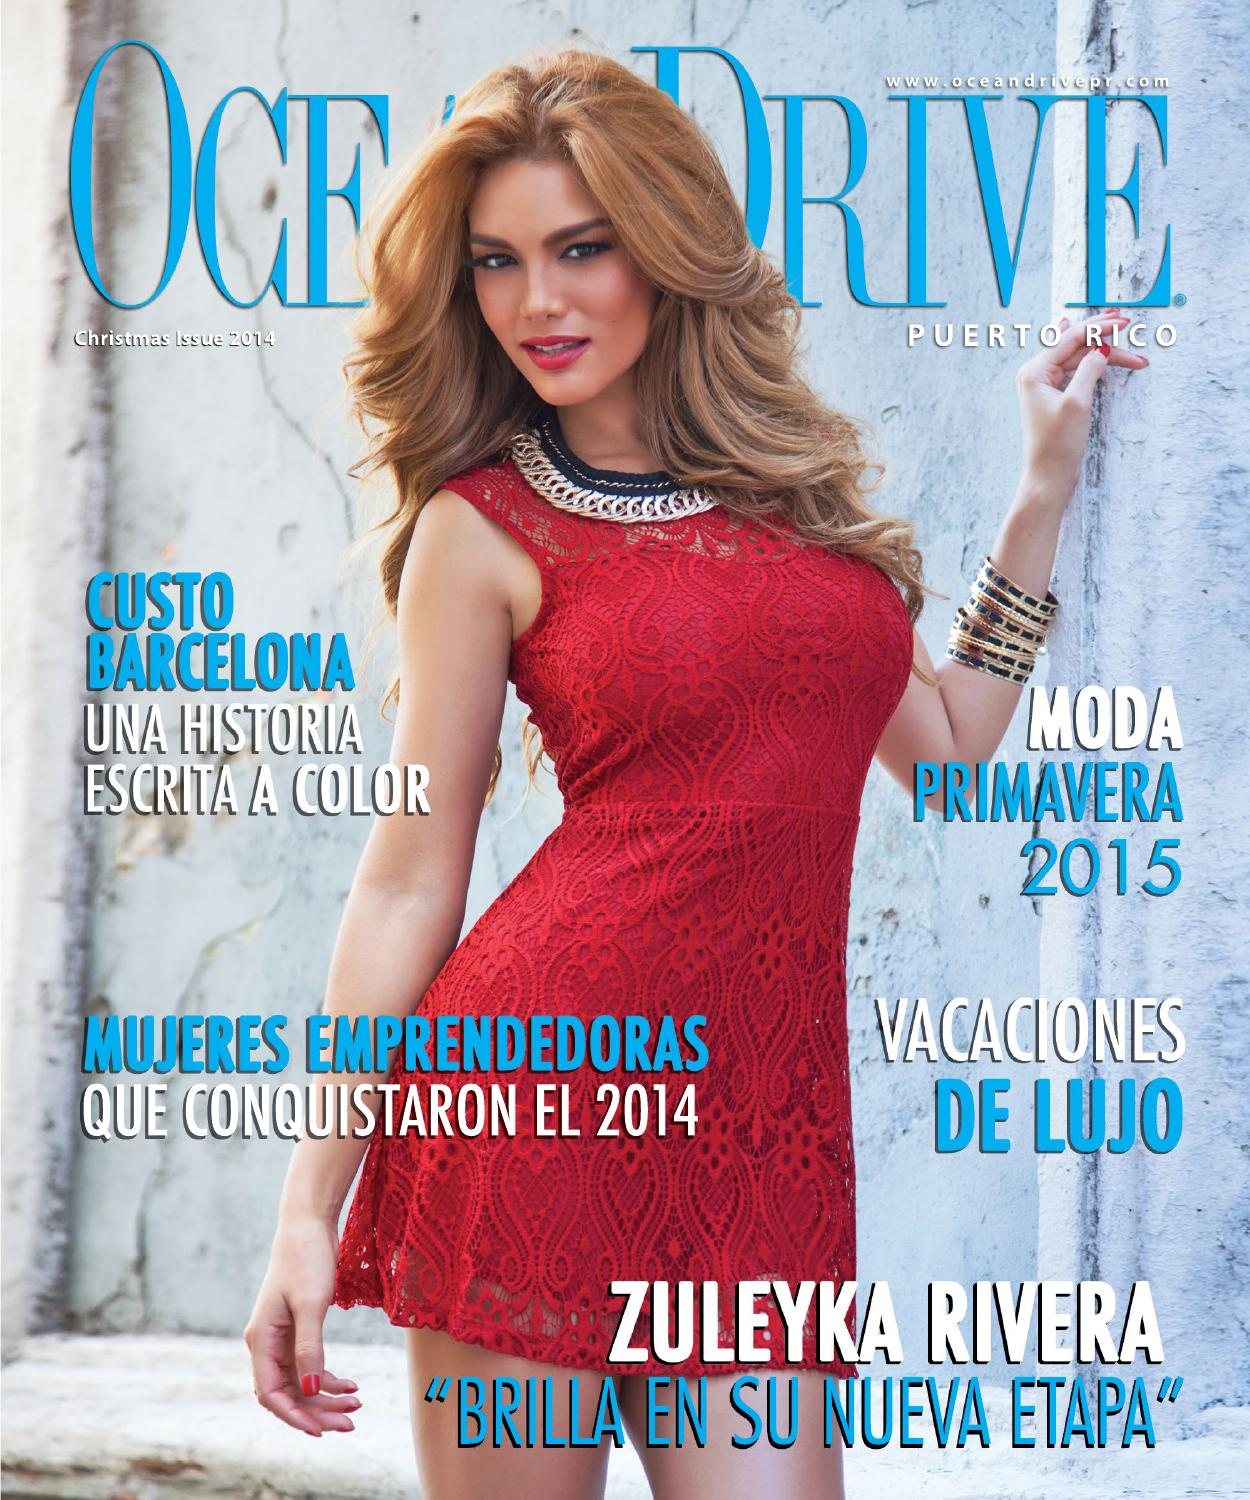 2b15c4413 Ocean Drive Puerto Rico Christmas Issue 2014 by OHIVAS